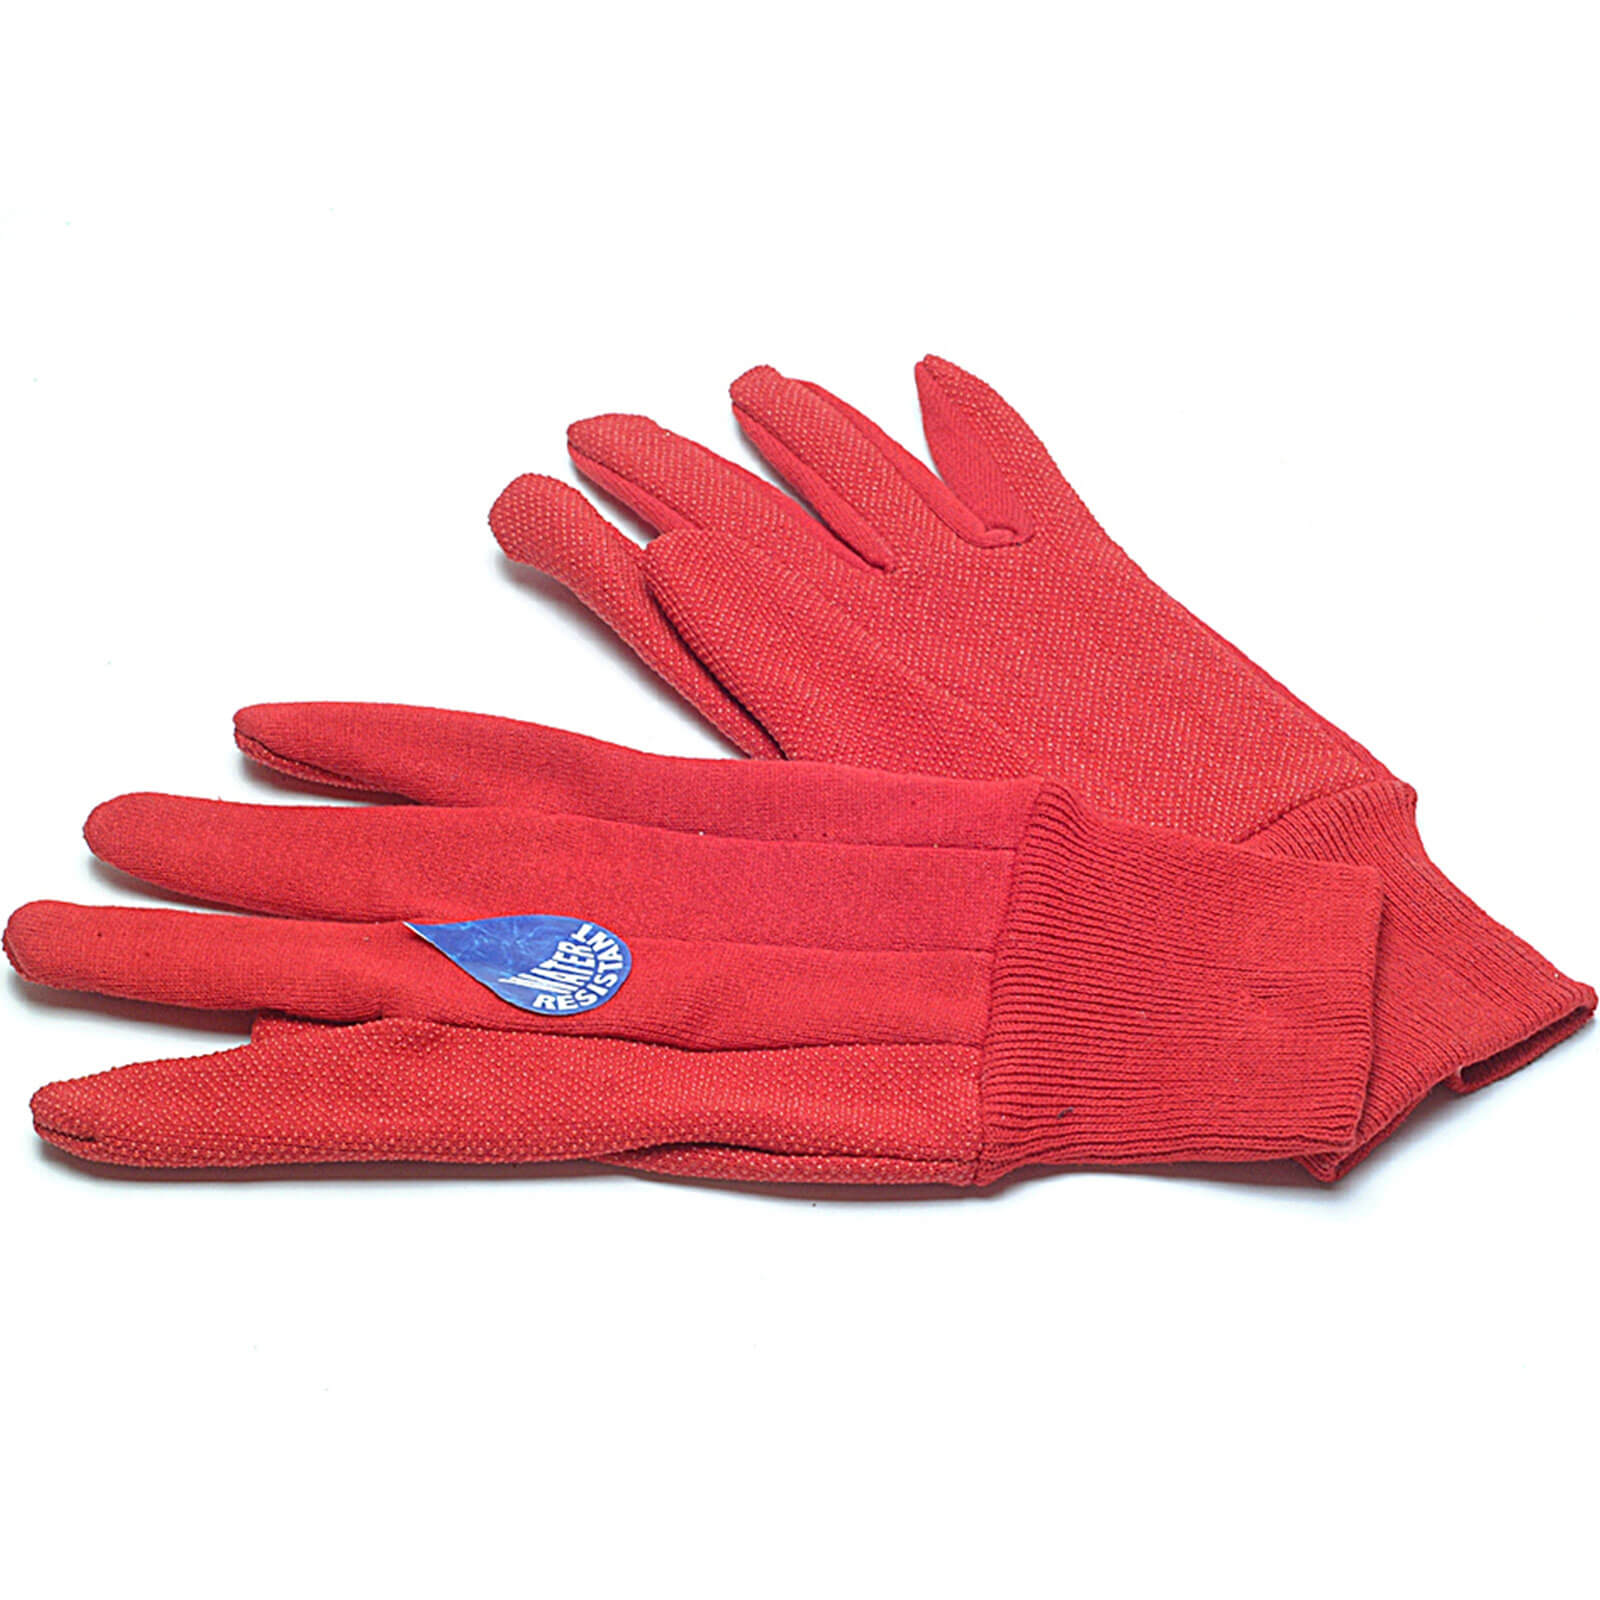 Town & Country Tgl101 Jersey Extra Grip Gloves